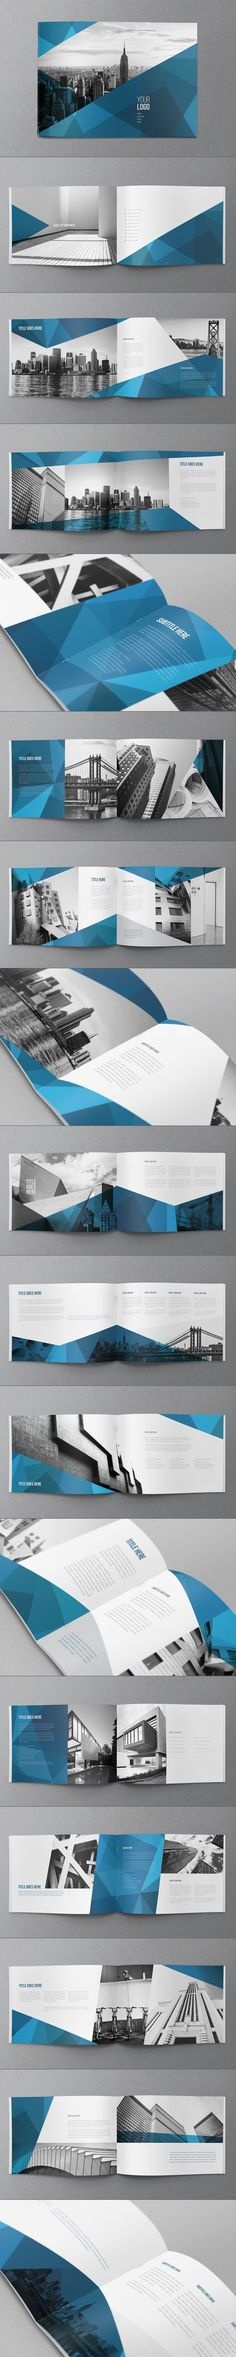 Abstract Architecture Brochure by Abra Design, via Behance // identity, branding, graphic Corporate Design, Branding Design, Design Brochure, Brochure Design Inspiration, Layout Inspiration, Graphisches Design, Layout Design, Design Elements, Modern Design